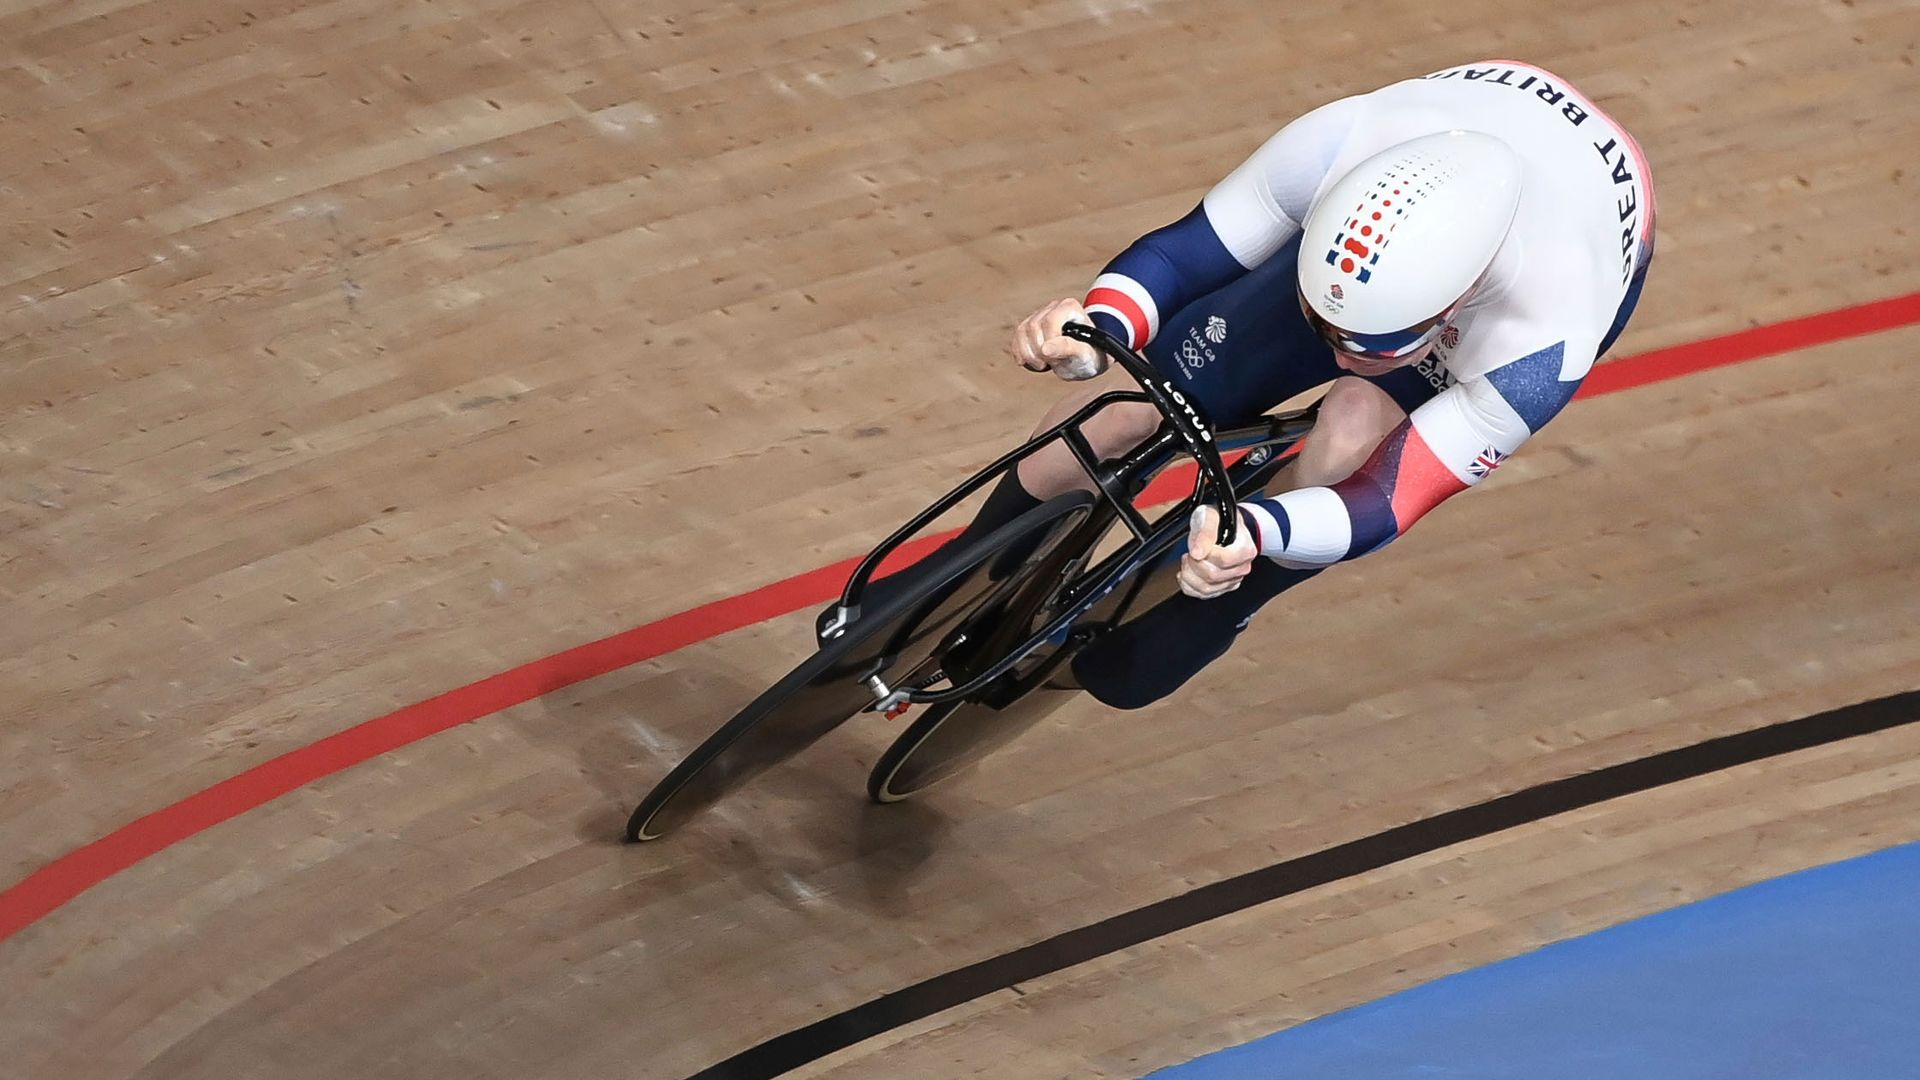 Carlin secures bronze for Team GB in men's sprint